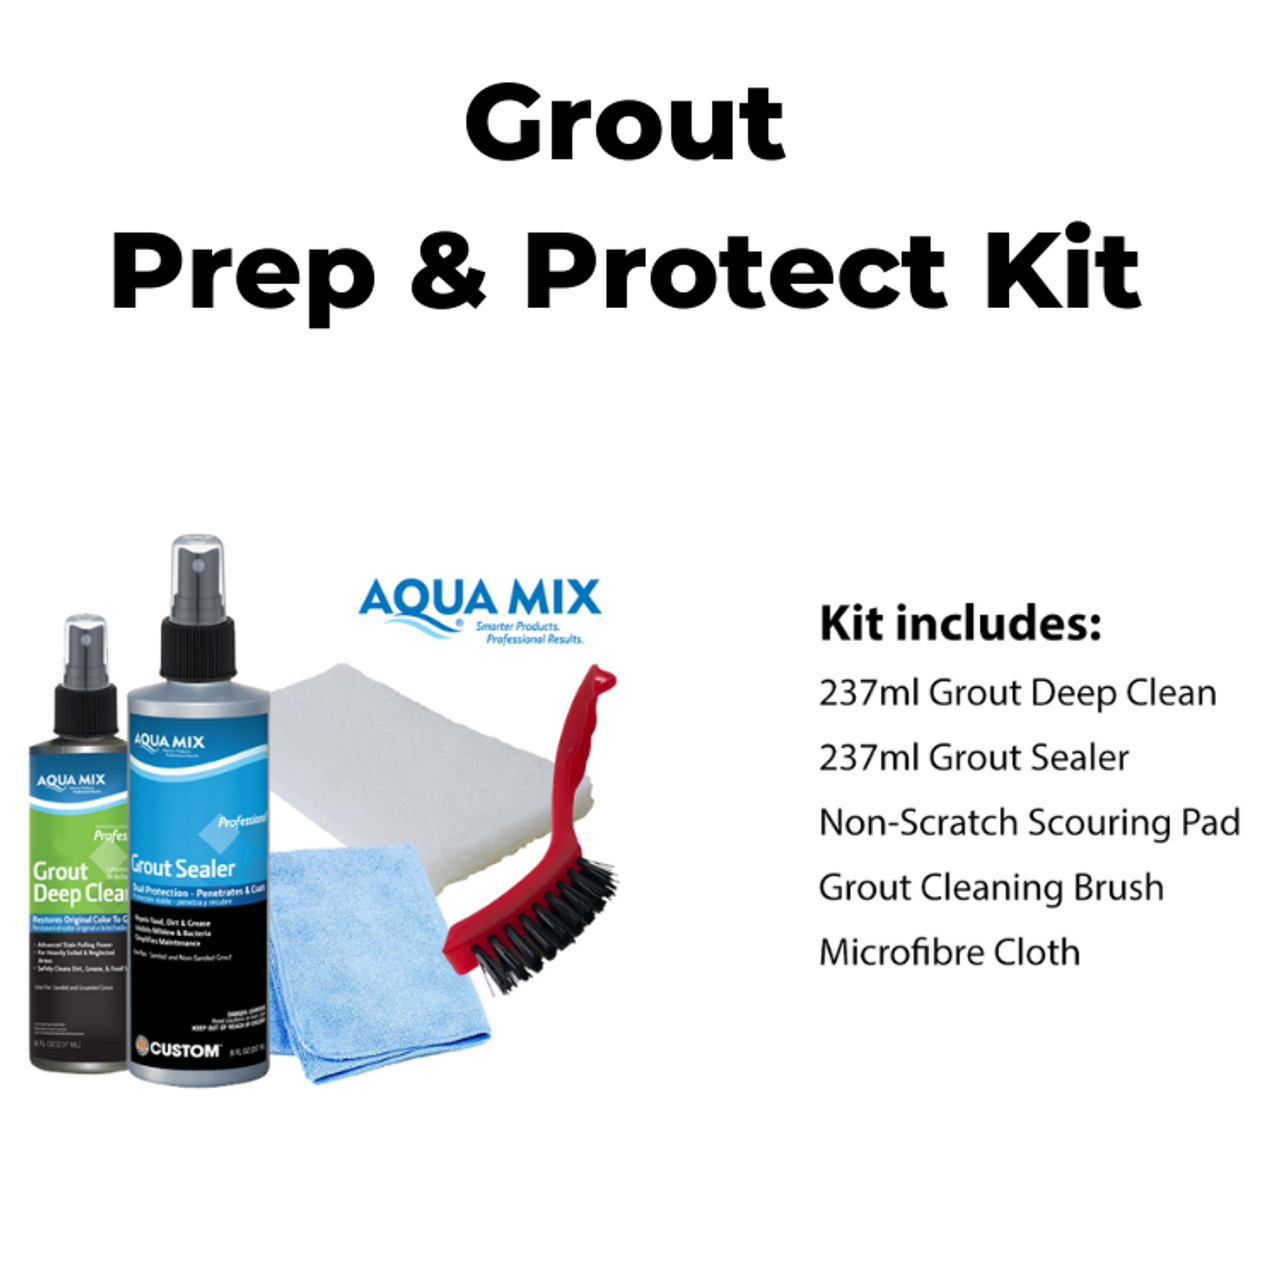 Aqua Mix Grout Prep and Protect Kit includes :Grout Deep Clean, Grout Scrubbing Brush, White Nylon Scouring Pad, Microfibre Cloth, Grout Sealer